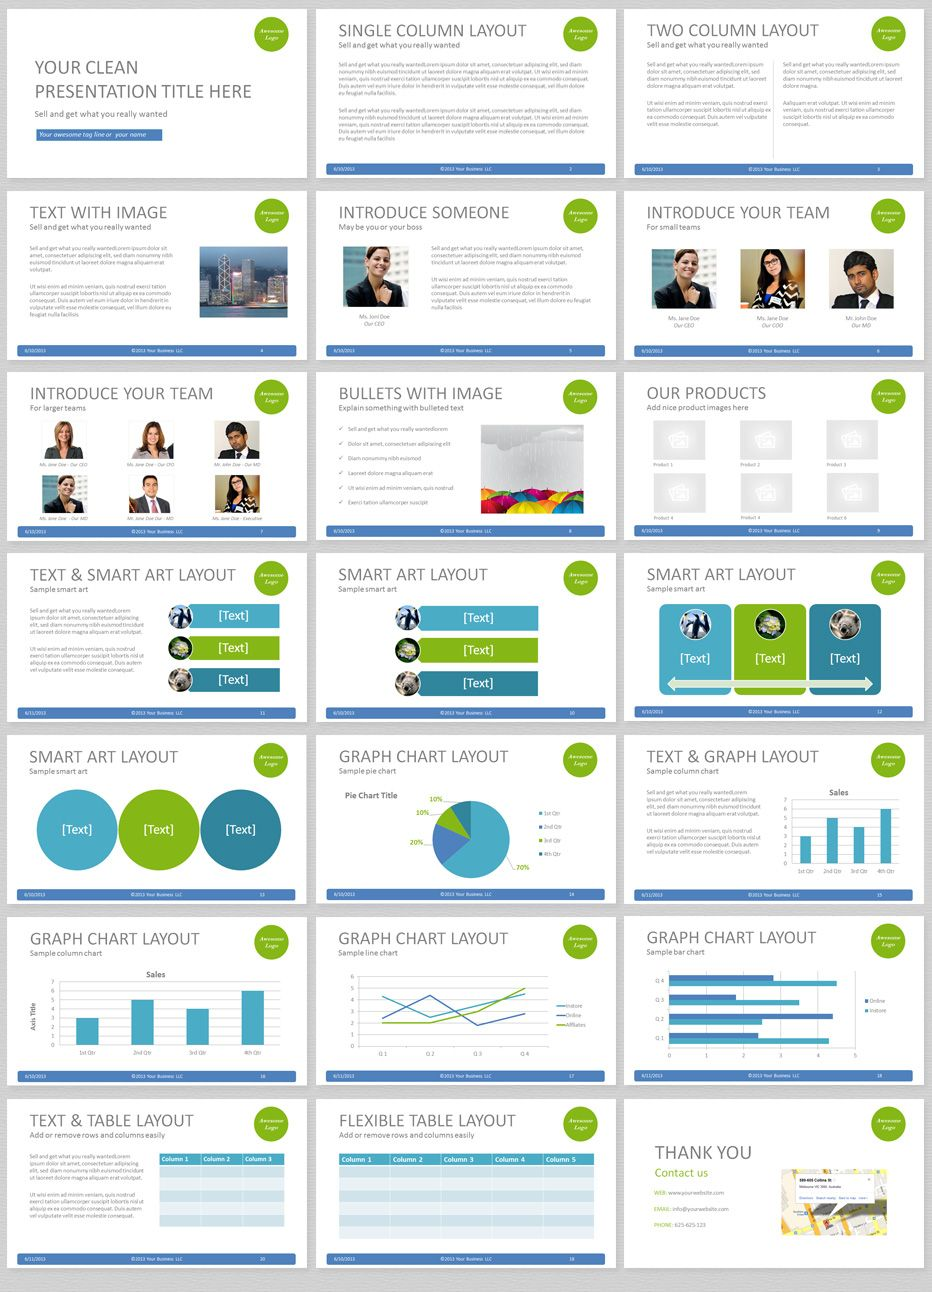 This Is Clean Business PowerPoint Template With Easy To Use Professional  Master PowerPoint Slides. View The Predesigned Slides Of This Amazingly  Simple And ...